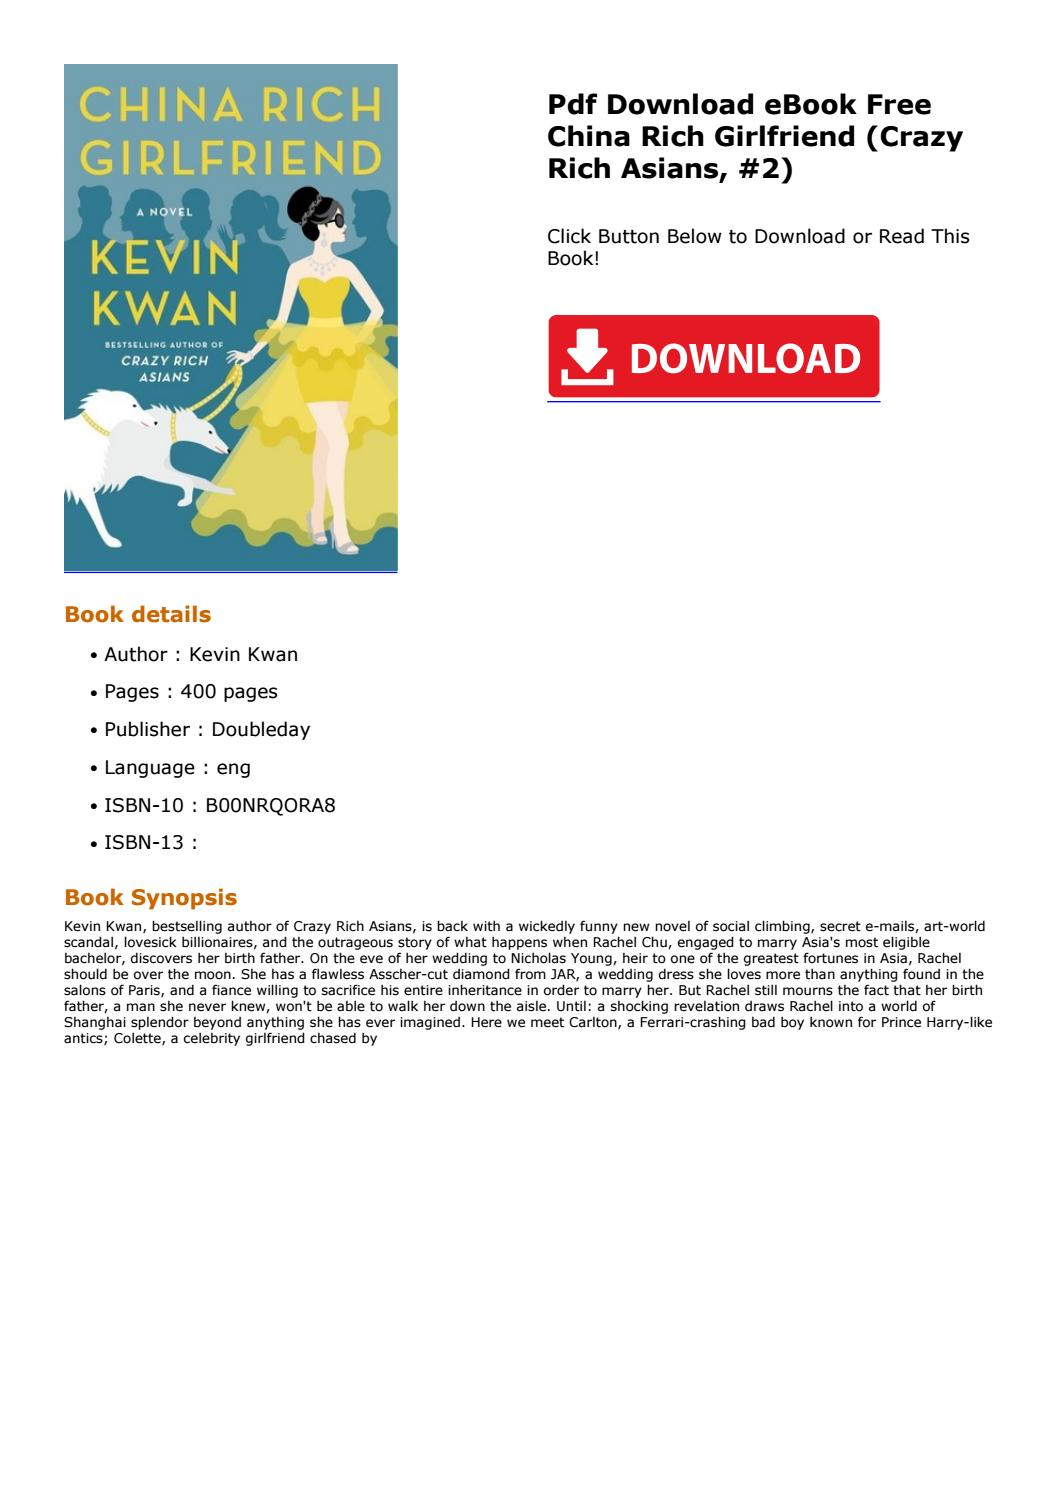 Crazy Rich Asians Pdf Free